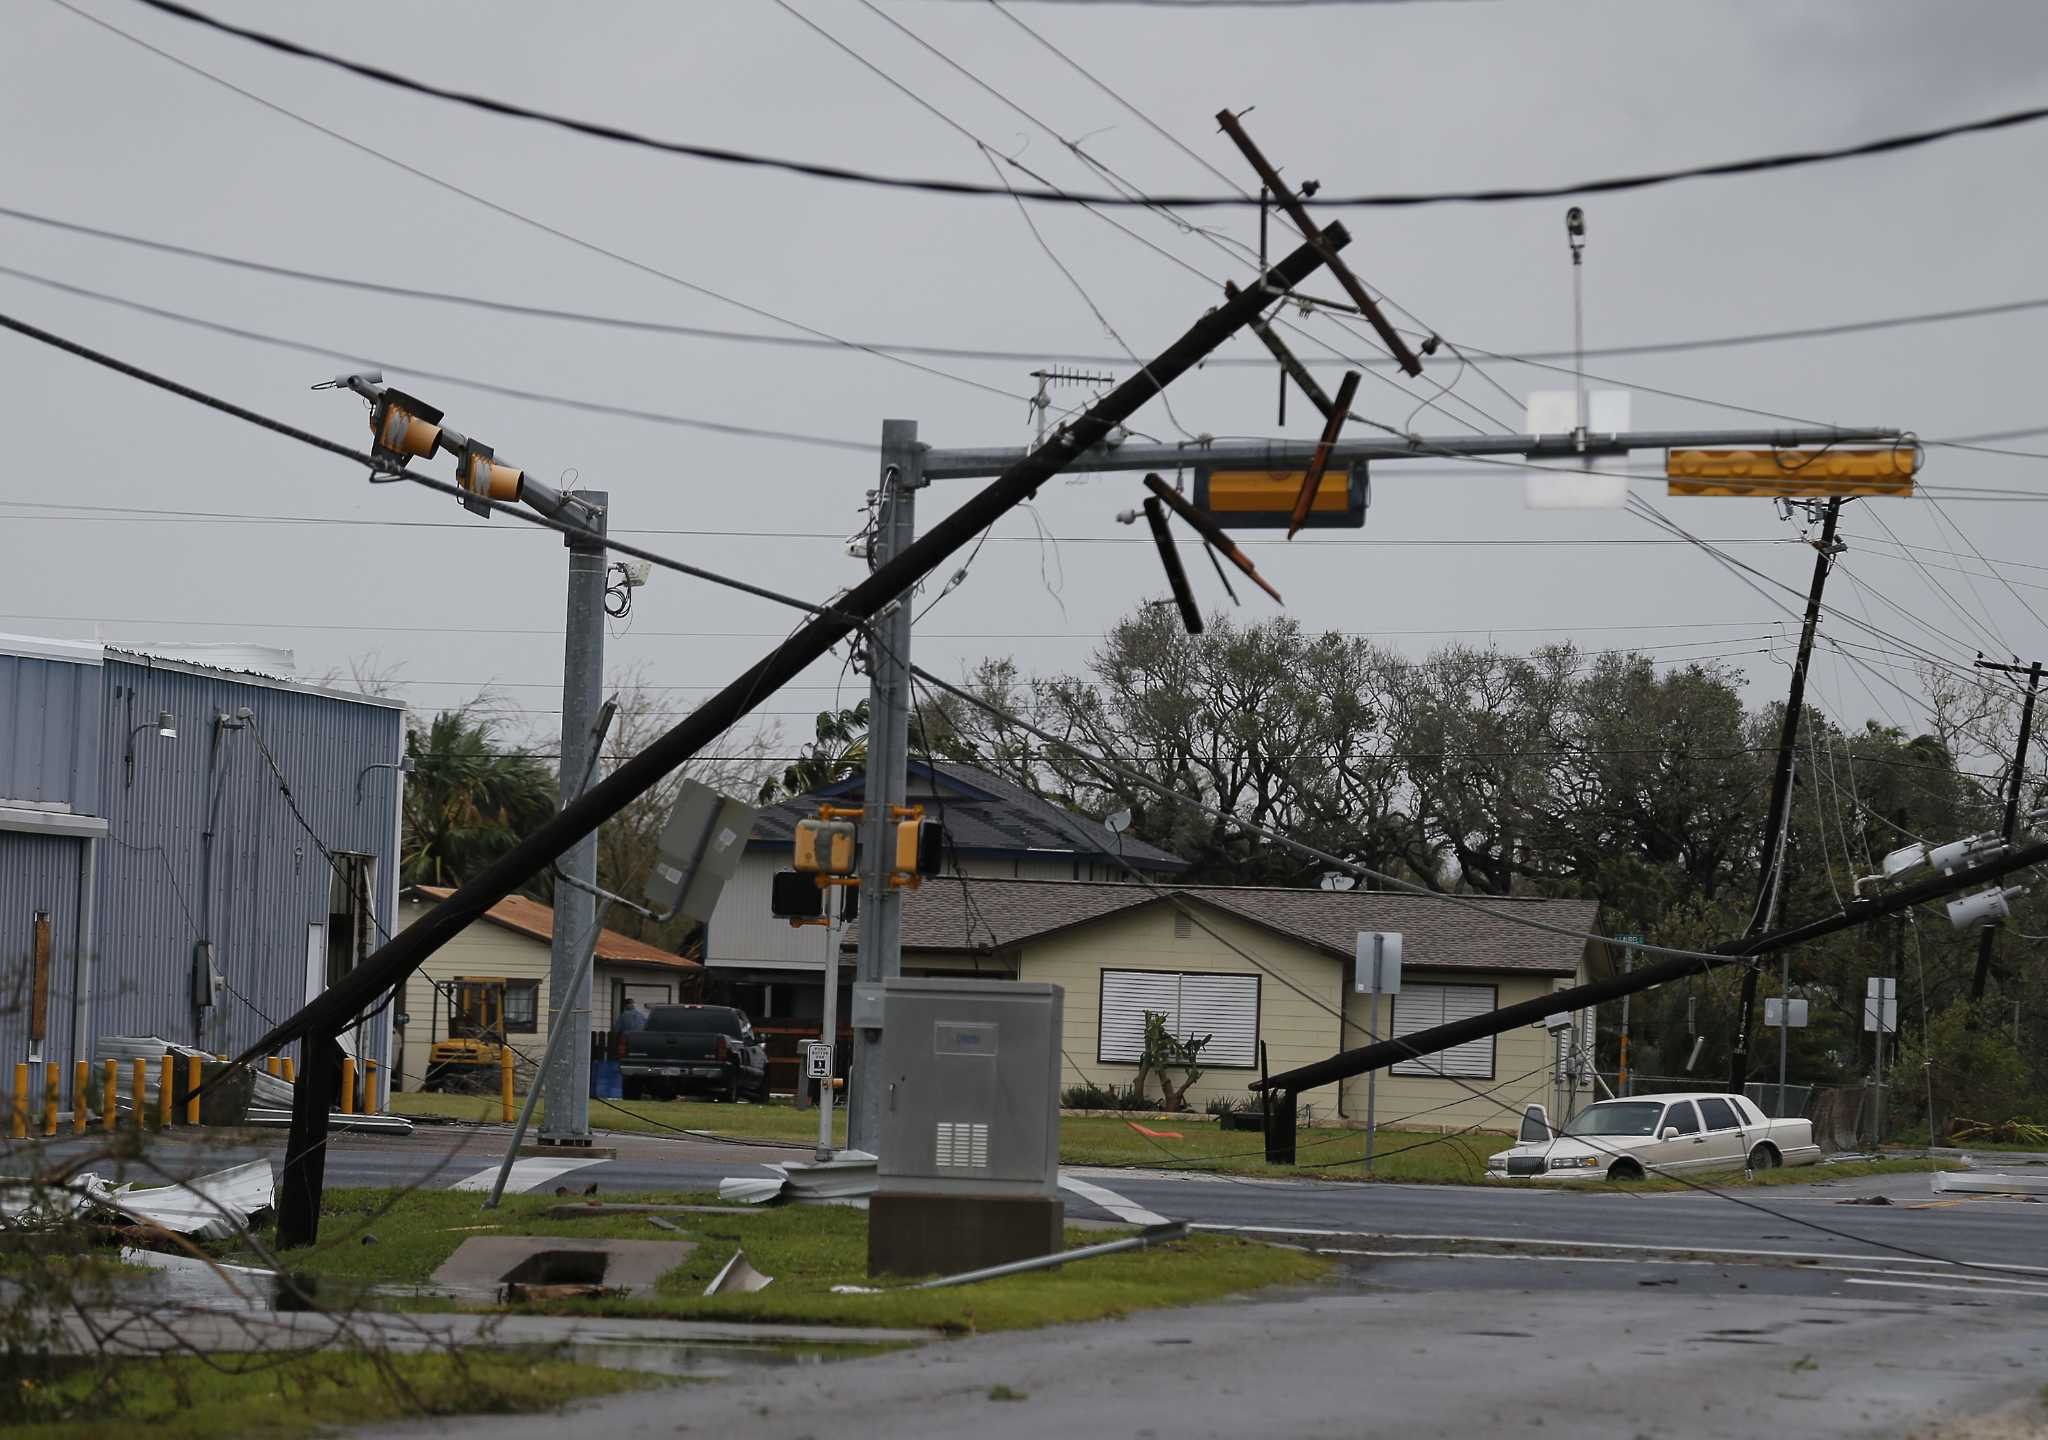 Should we bury our power lines? - HoustonChronicle.com